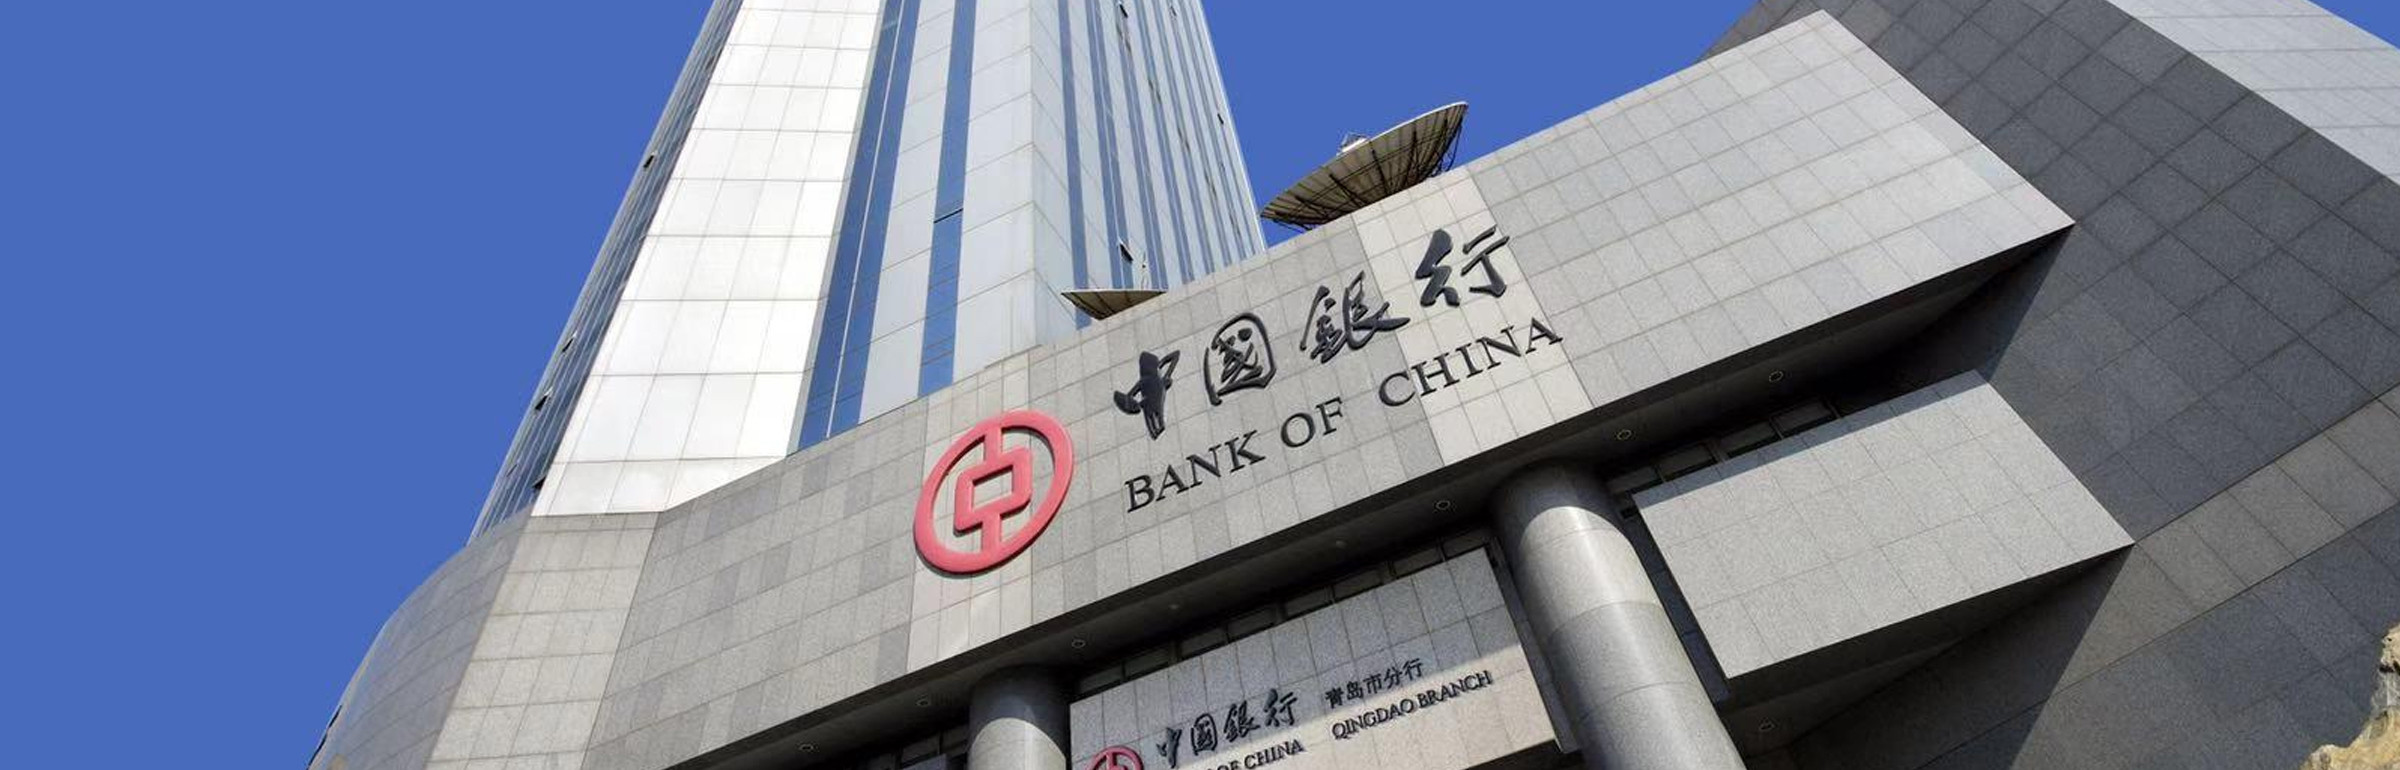 Banner Agricultural Bank of China (Luxembourg) S.A.